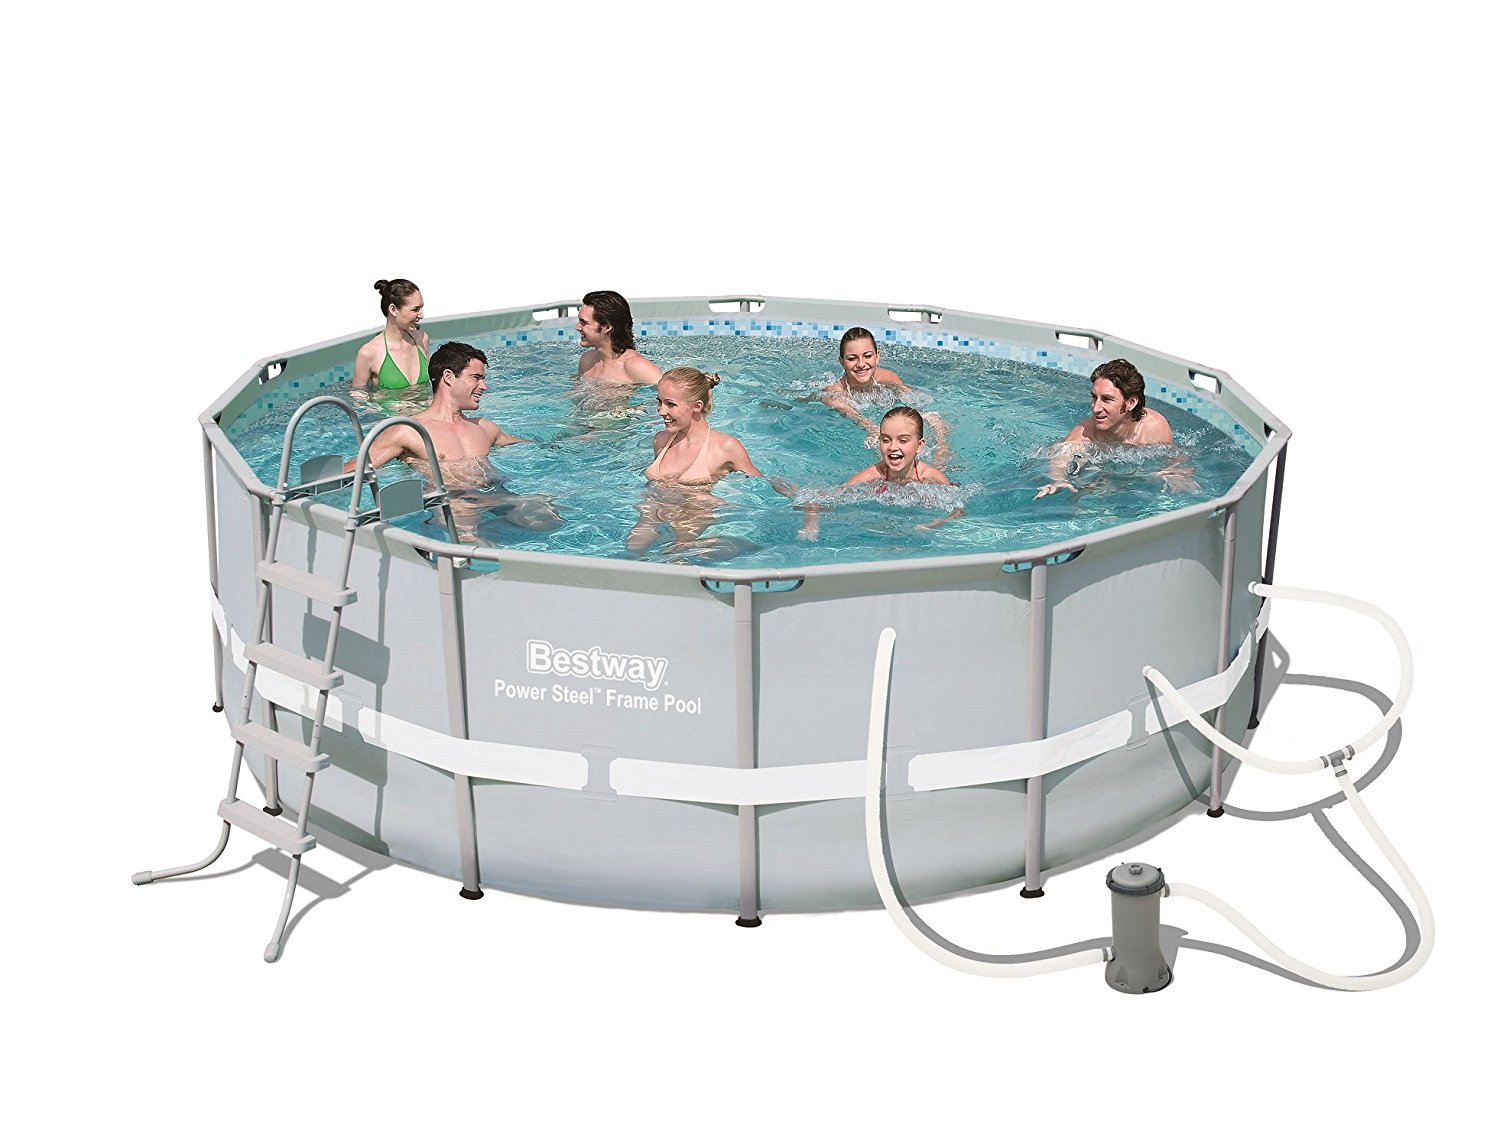 bestway power steel 14 39 x 48 frame pool set review latest fitness reviews fitness machine. Black Bedroom Furniture Sets. Home Design Ideas